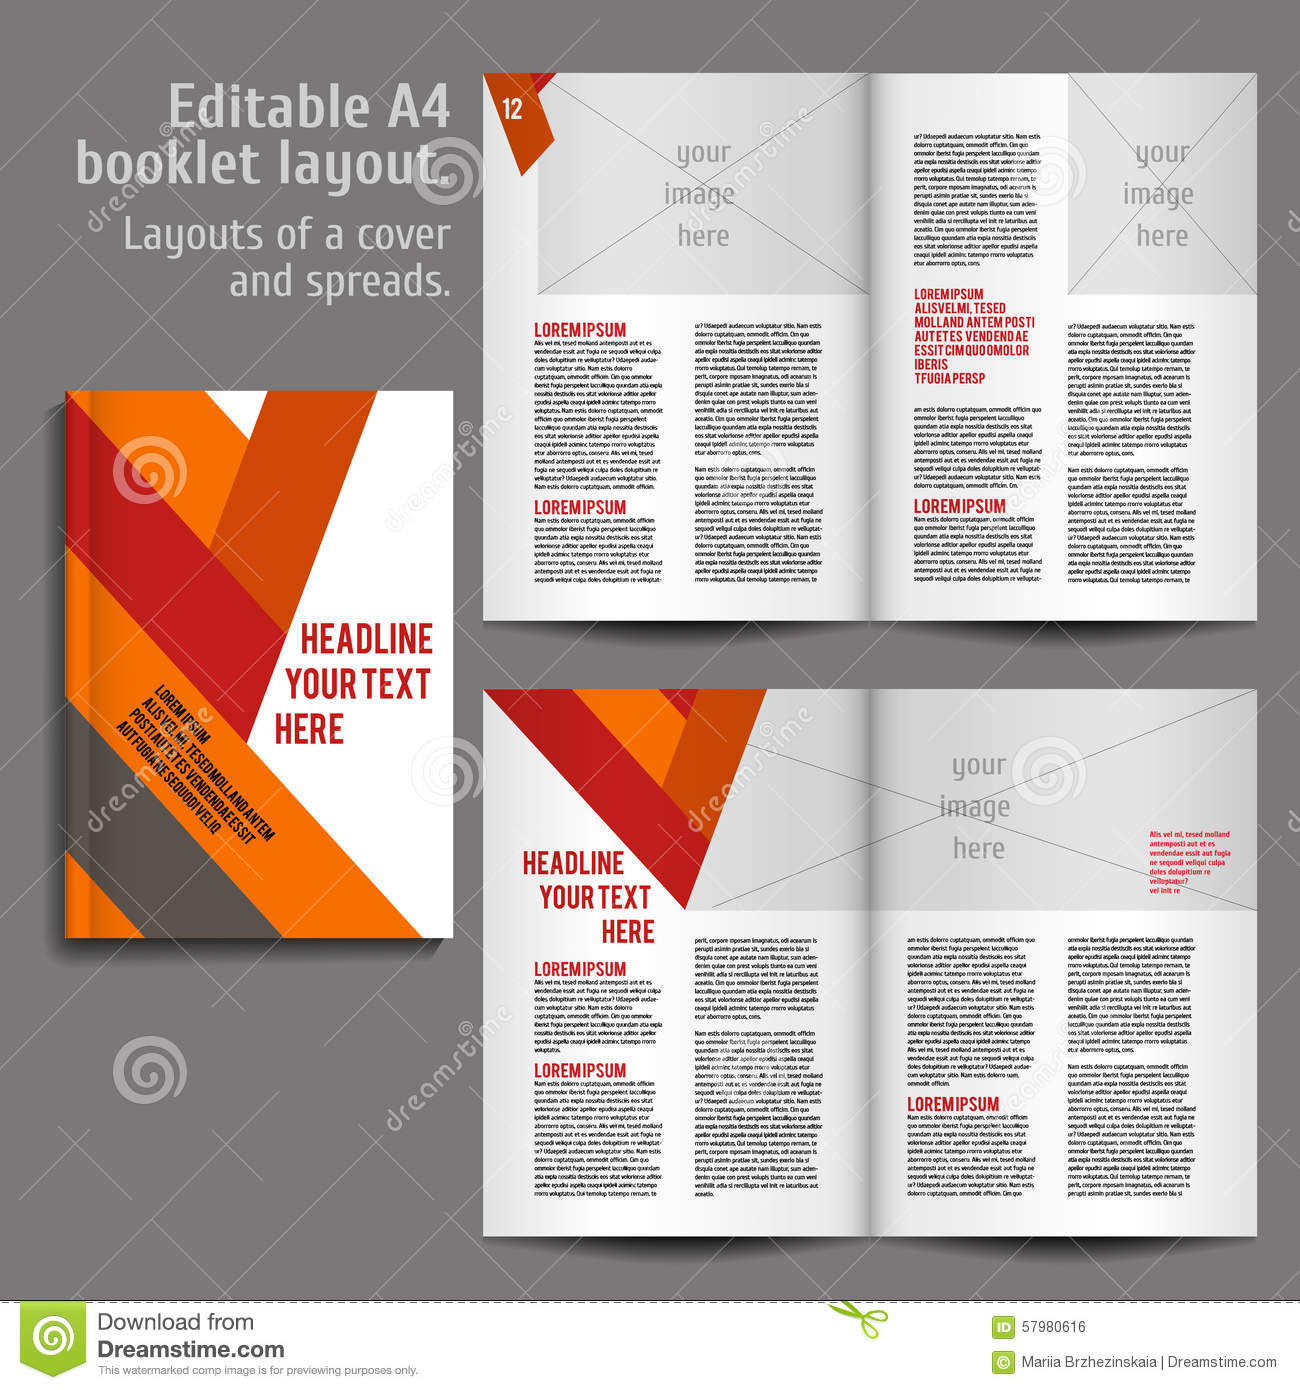 A4 book layout design template stock vector illustration of layout a4 book geometric abstract layout design template with cover and 2 spreads of contents preview for design magazines books annual reports maxwellsz